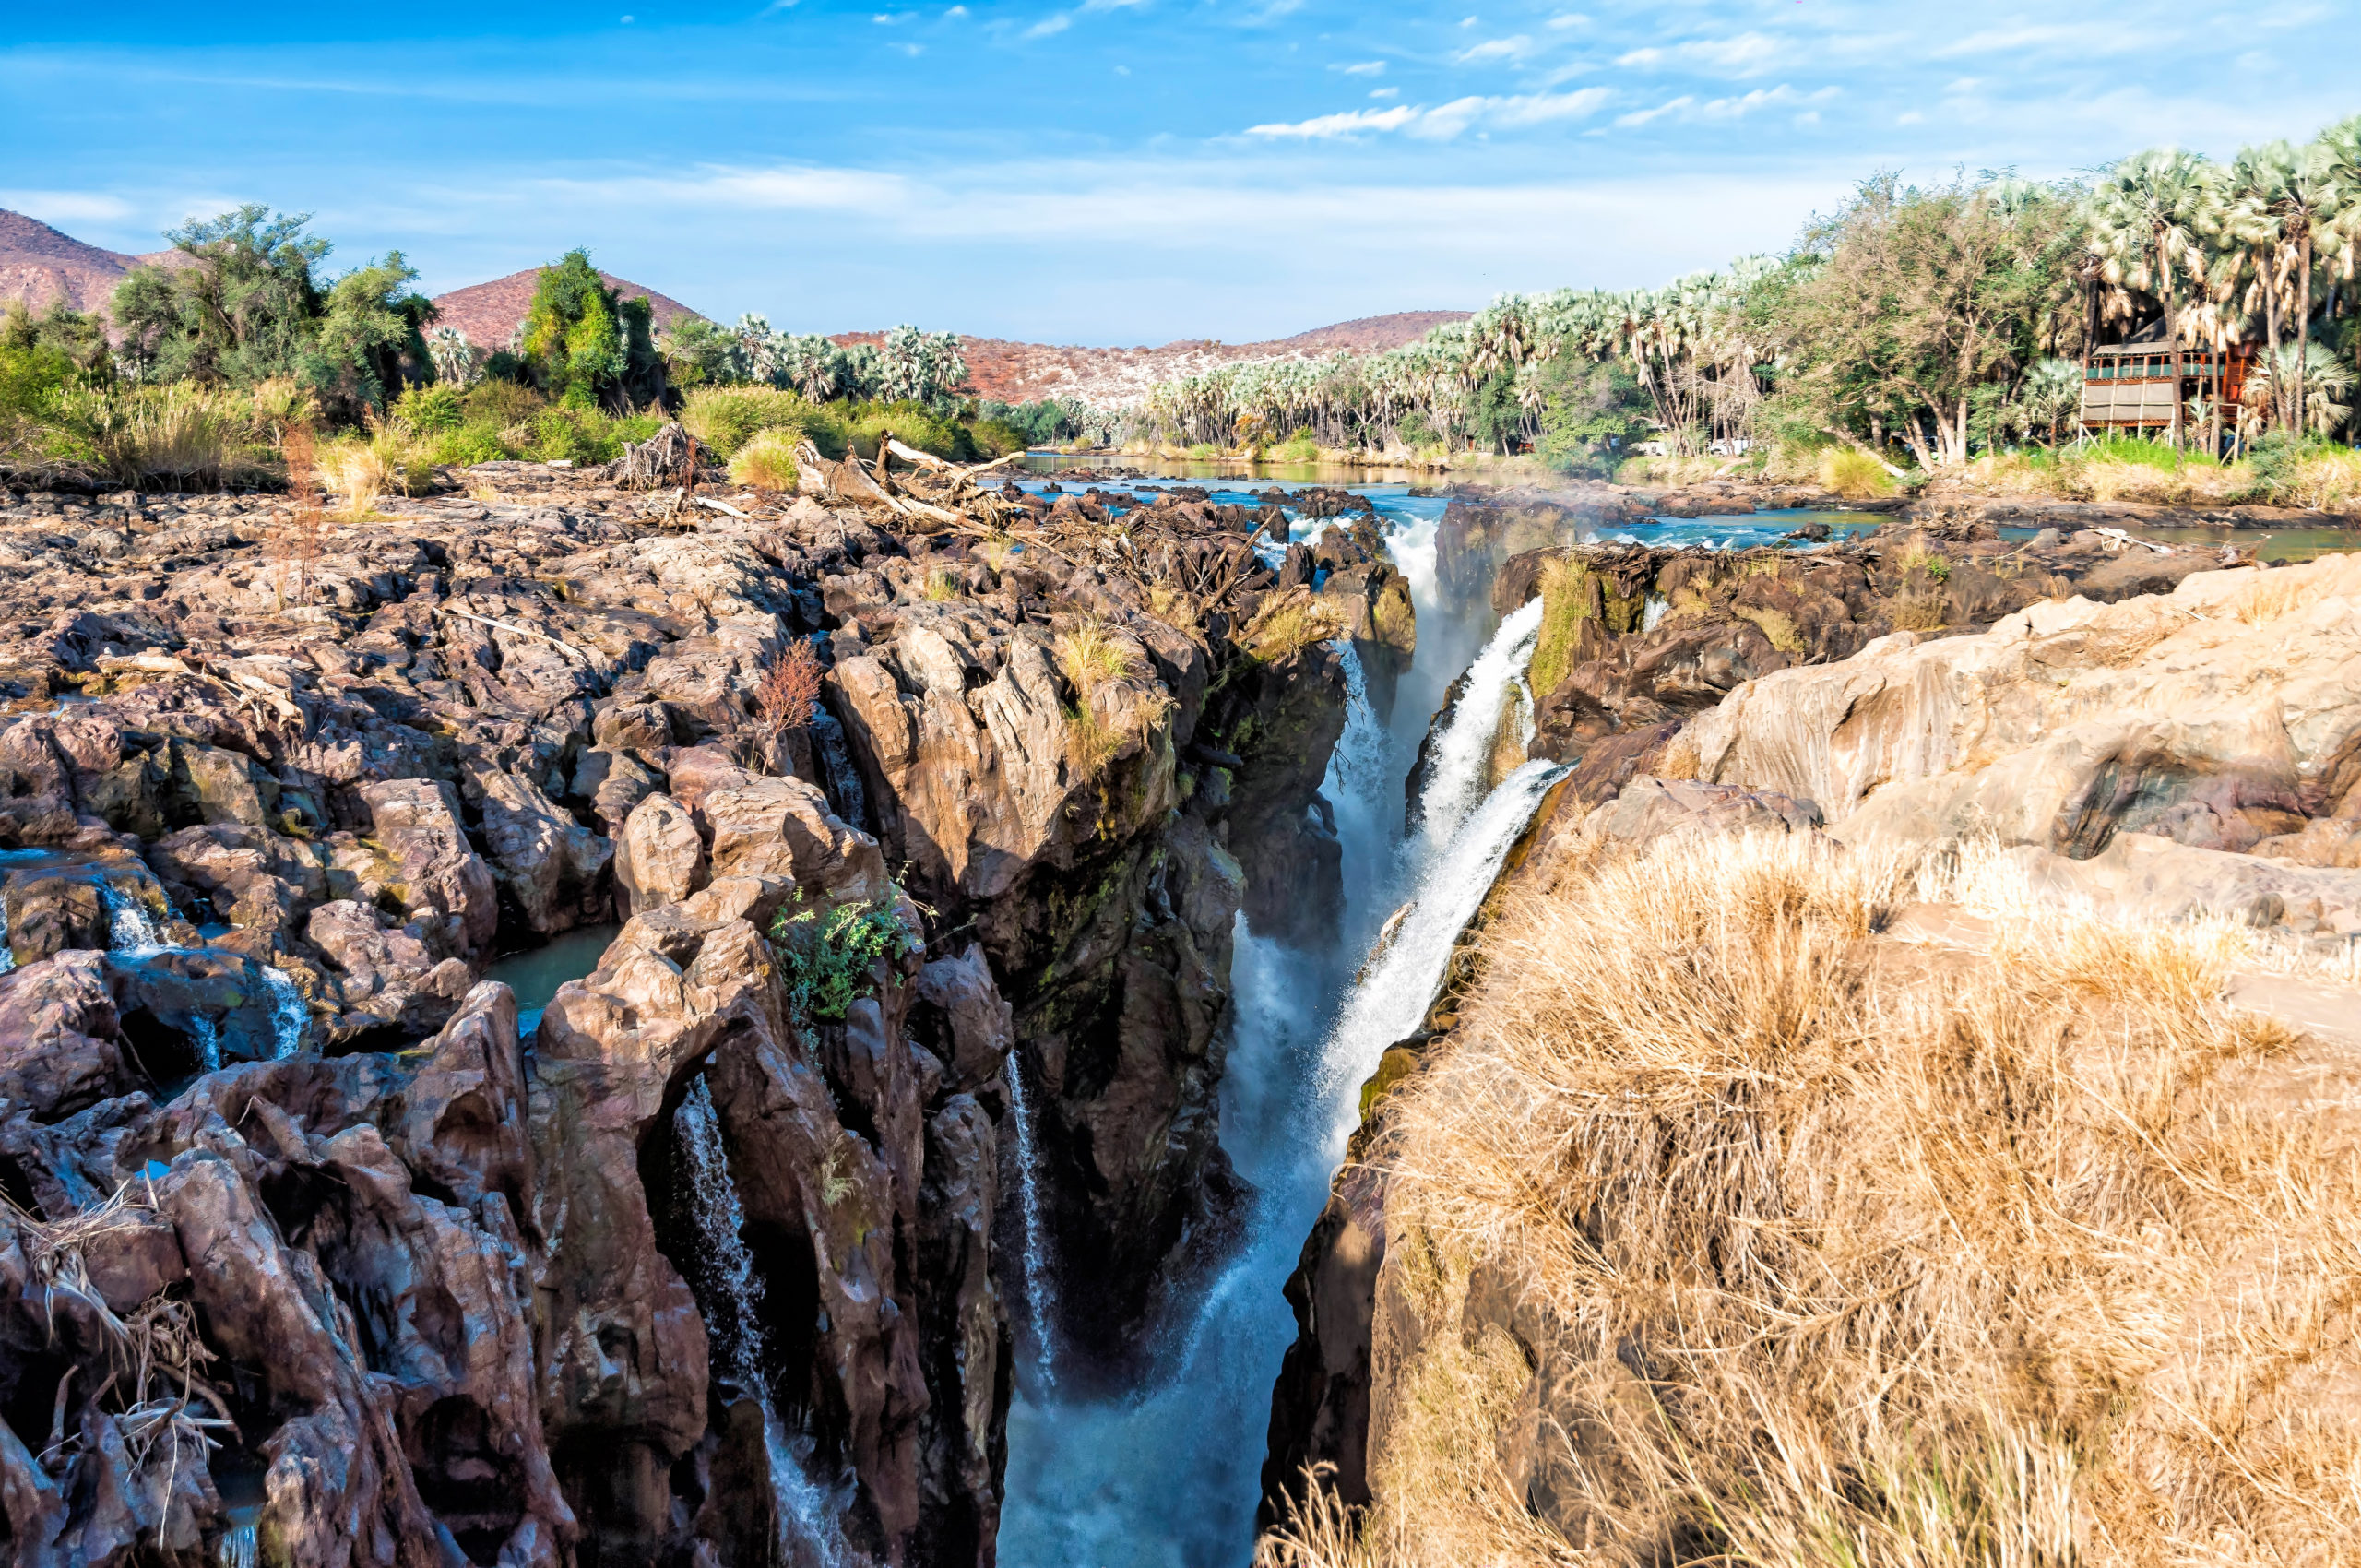 Epupa Falls | Attraction in Namibia | Destination Namibia